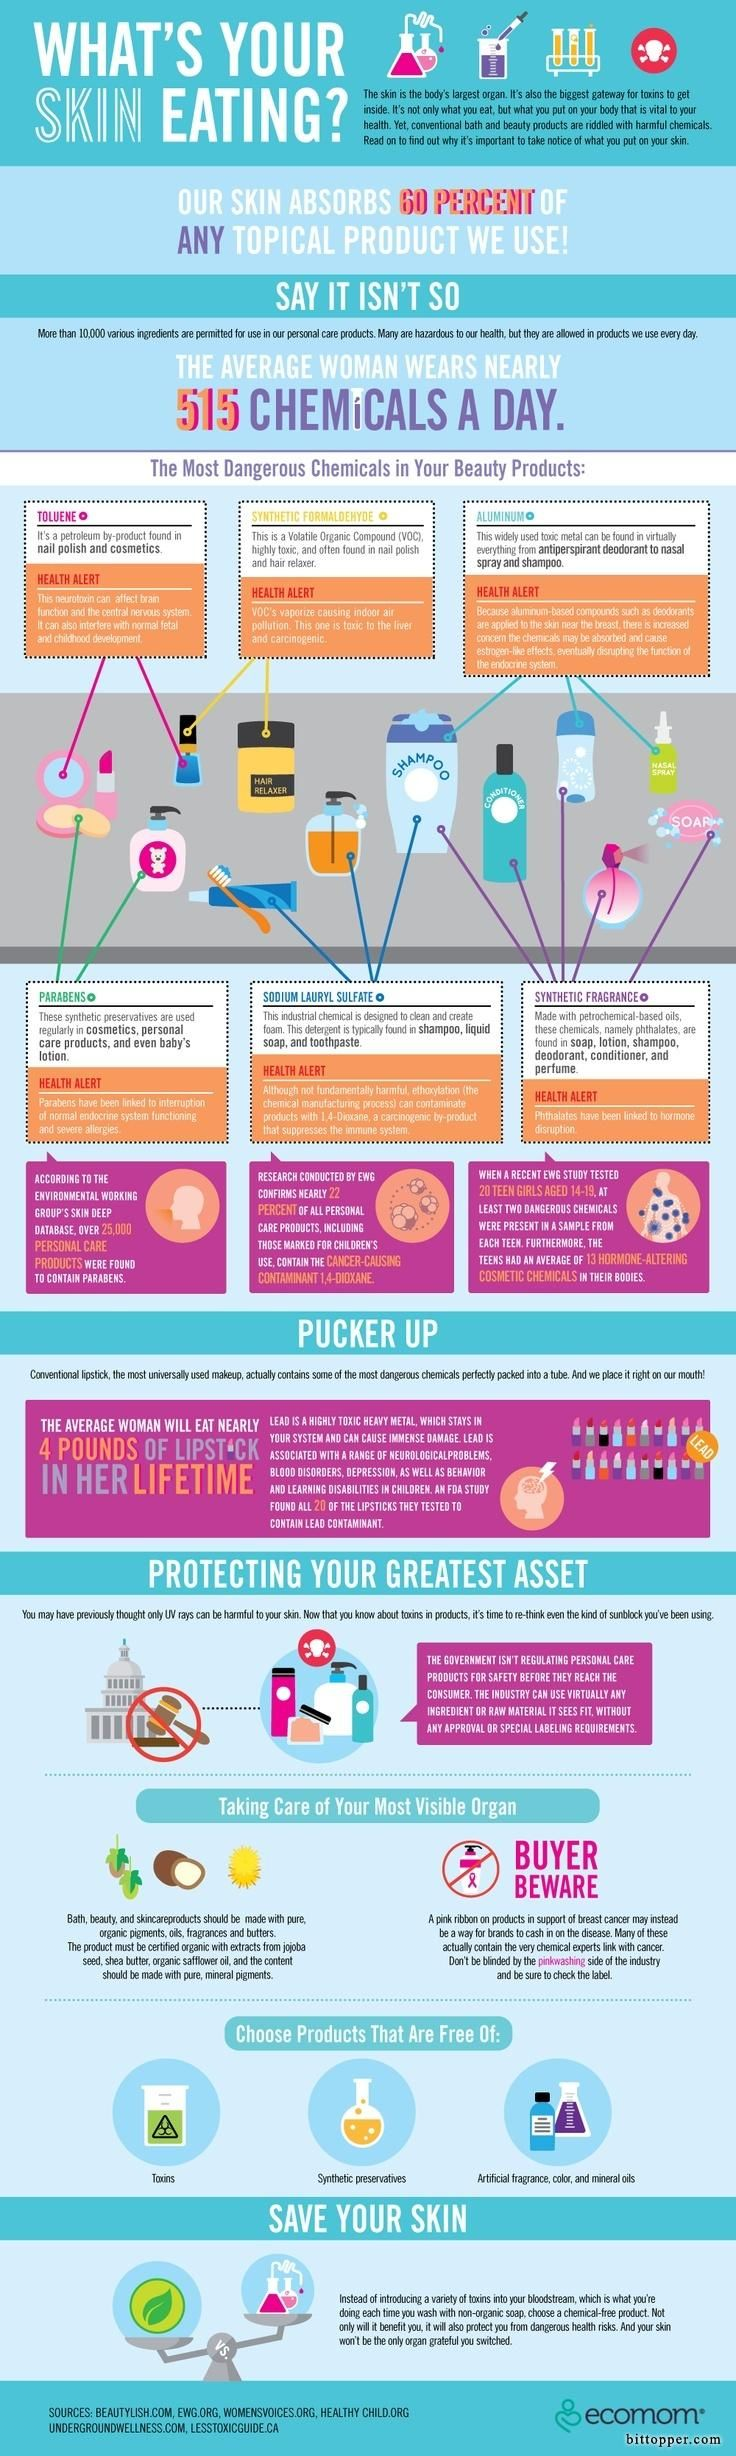 What's your skin eating? You skin obsorbs whatever is put on it in 26 seconds. Get your certified organic beauty products at Green People www.greenpeople.co.uk  #health #infographic via bittopper.com #beauty #skincare #organic